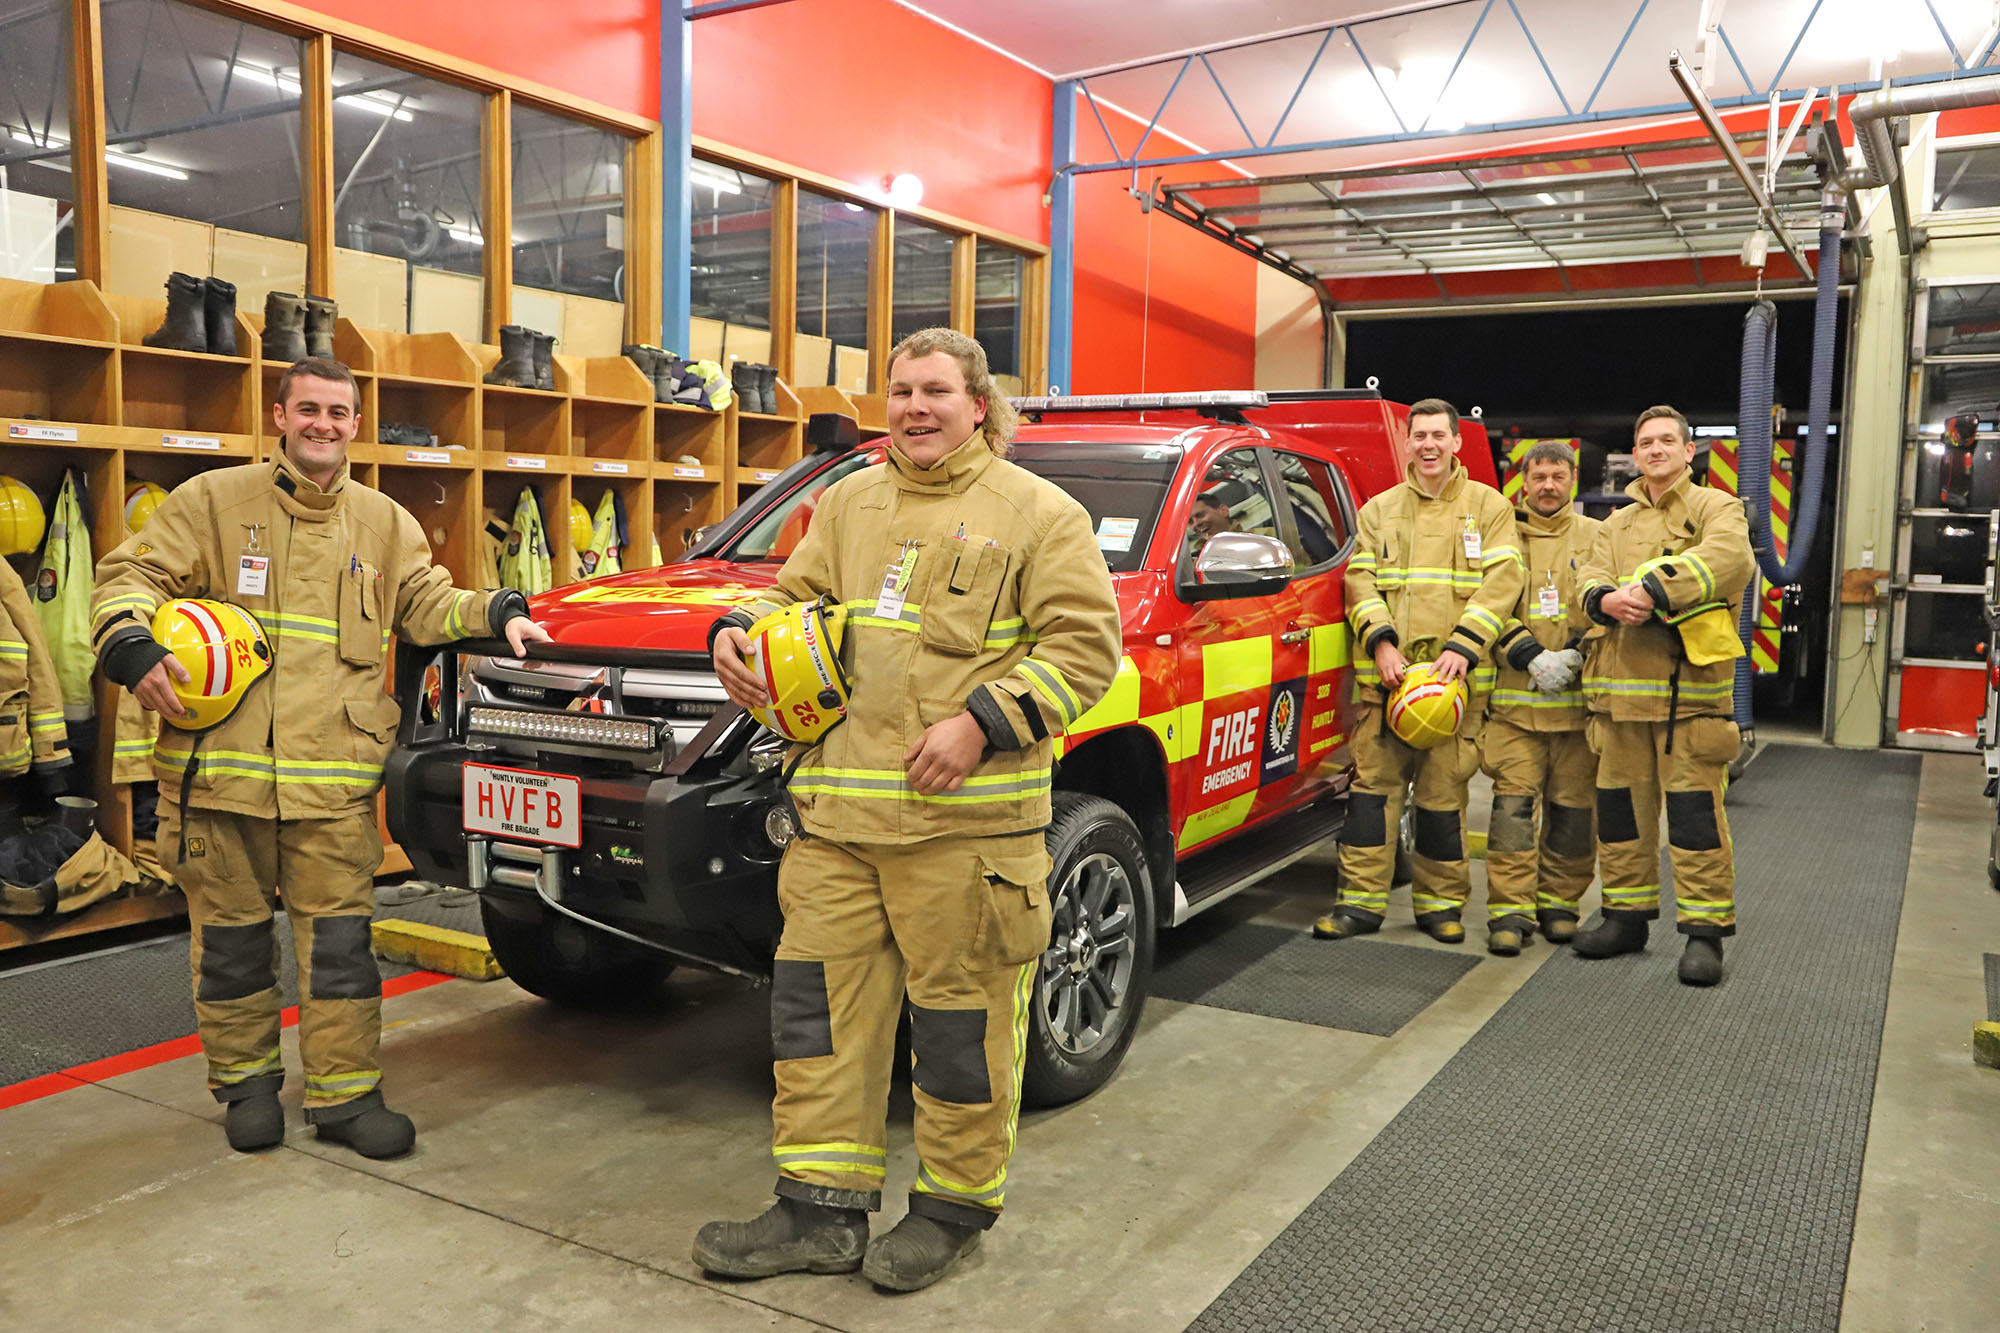 The Huntly Volunteer Fire Brigade